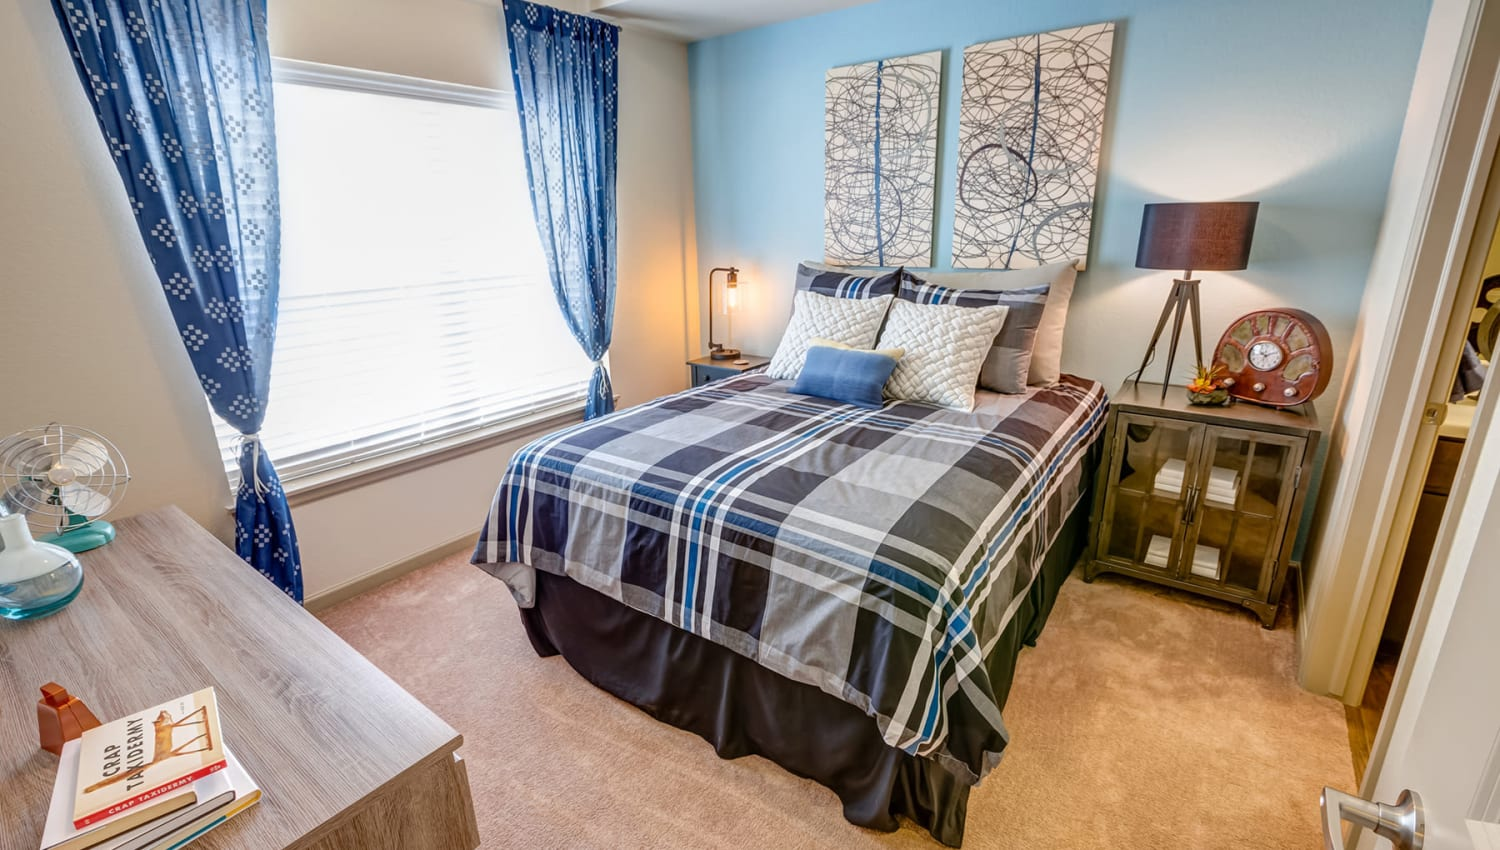 Model home's bedroom with draped windows and an accent wall at Granite 550 in Casper, Wyoming